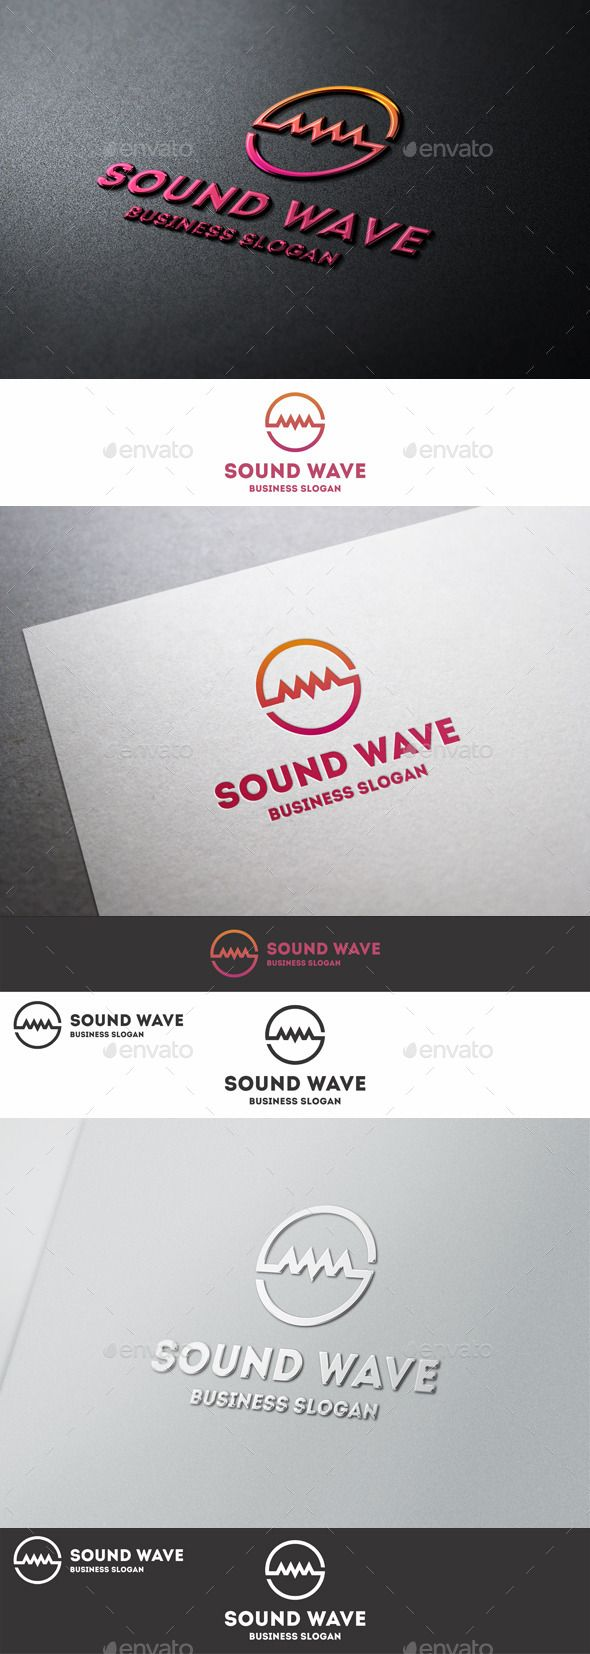 Sound Wave Logo S Letter - Digital Wave Studio Logo – An excellent logo template highly suitable for music production and entertainment businesses. Is a logo that can be used by multi media developers, radio station, audio designers, design agencies, web designers, graphic designers ; Suitable for companies engaged in music, media, record companies, music studios, music stores, entertainment, event organizer, and other related companies. etc.